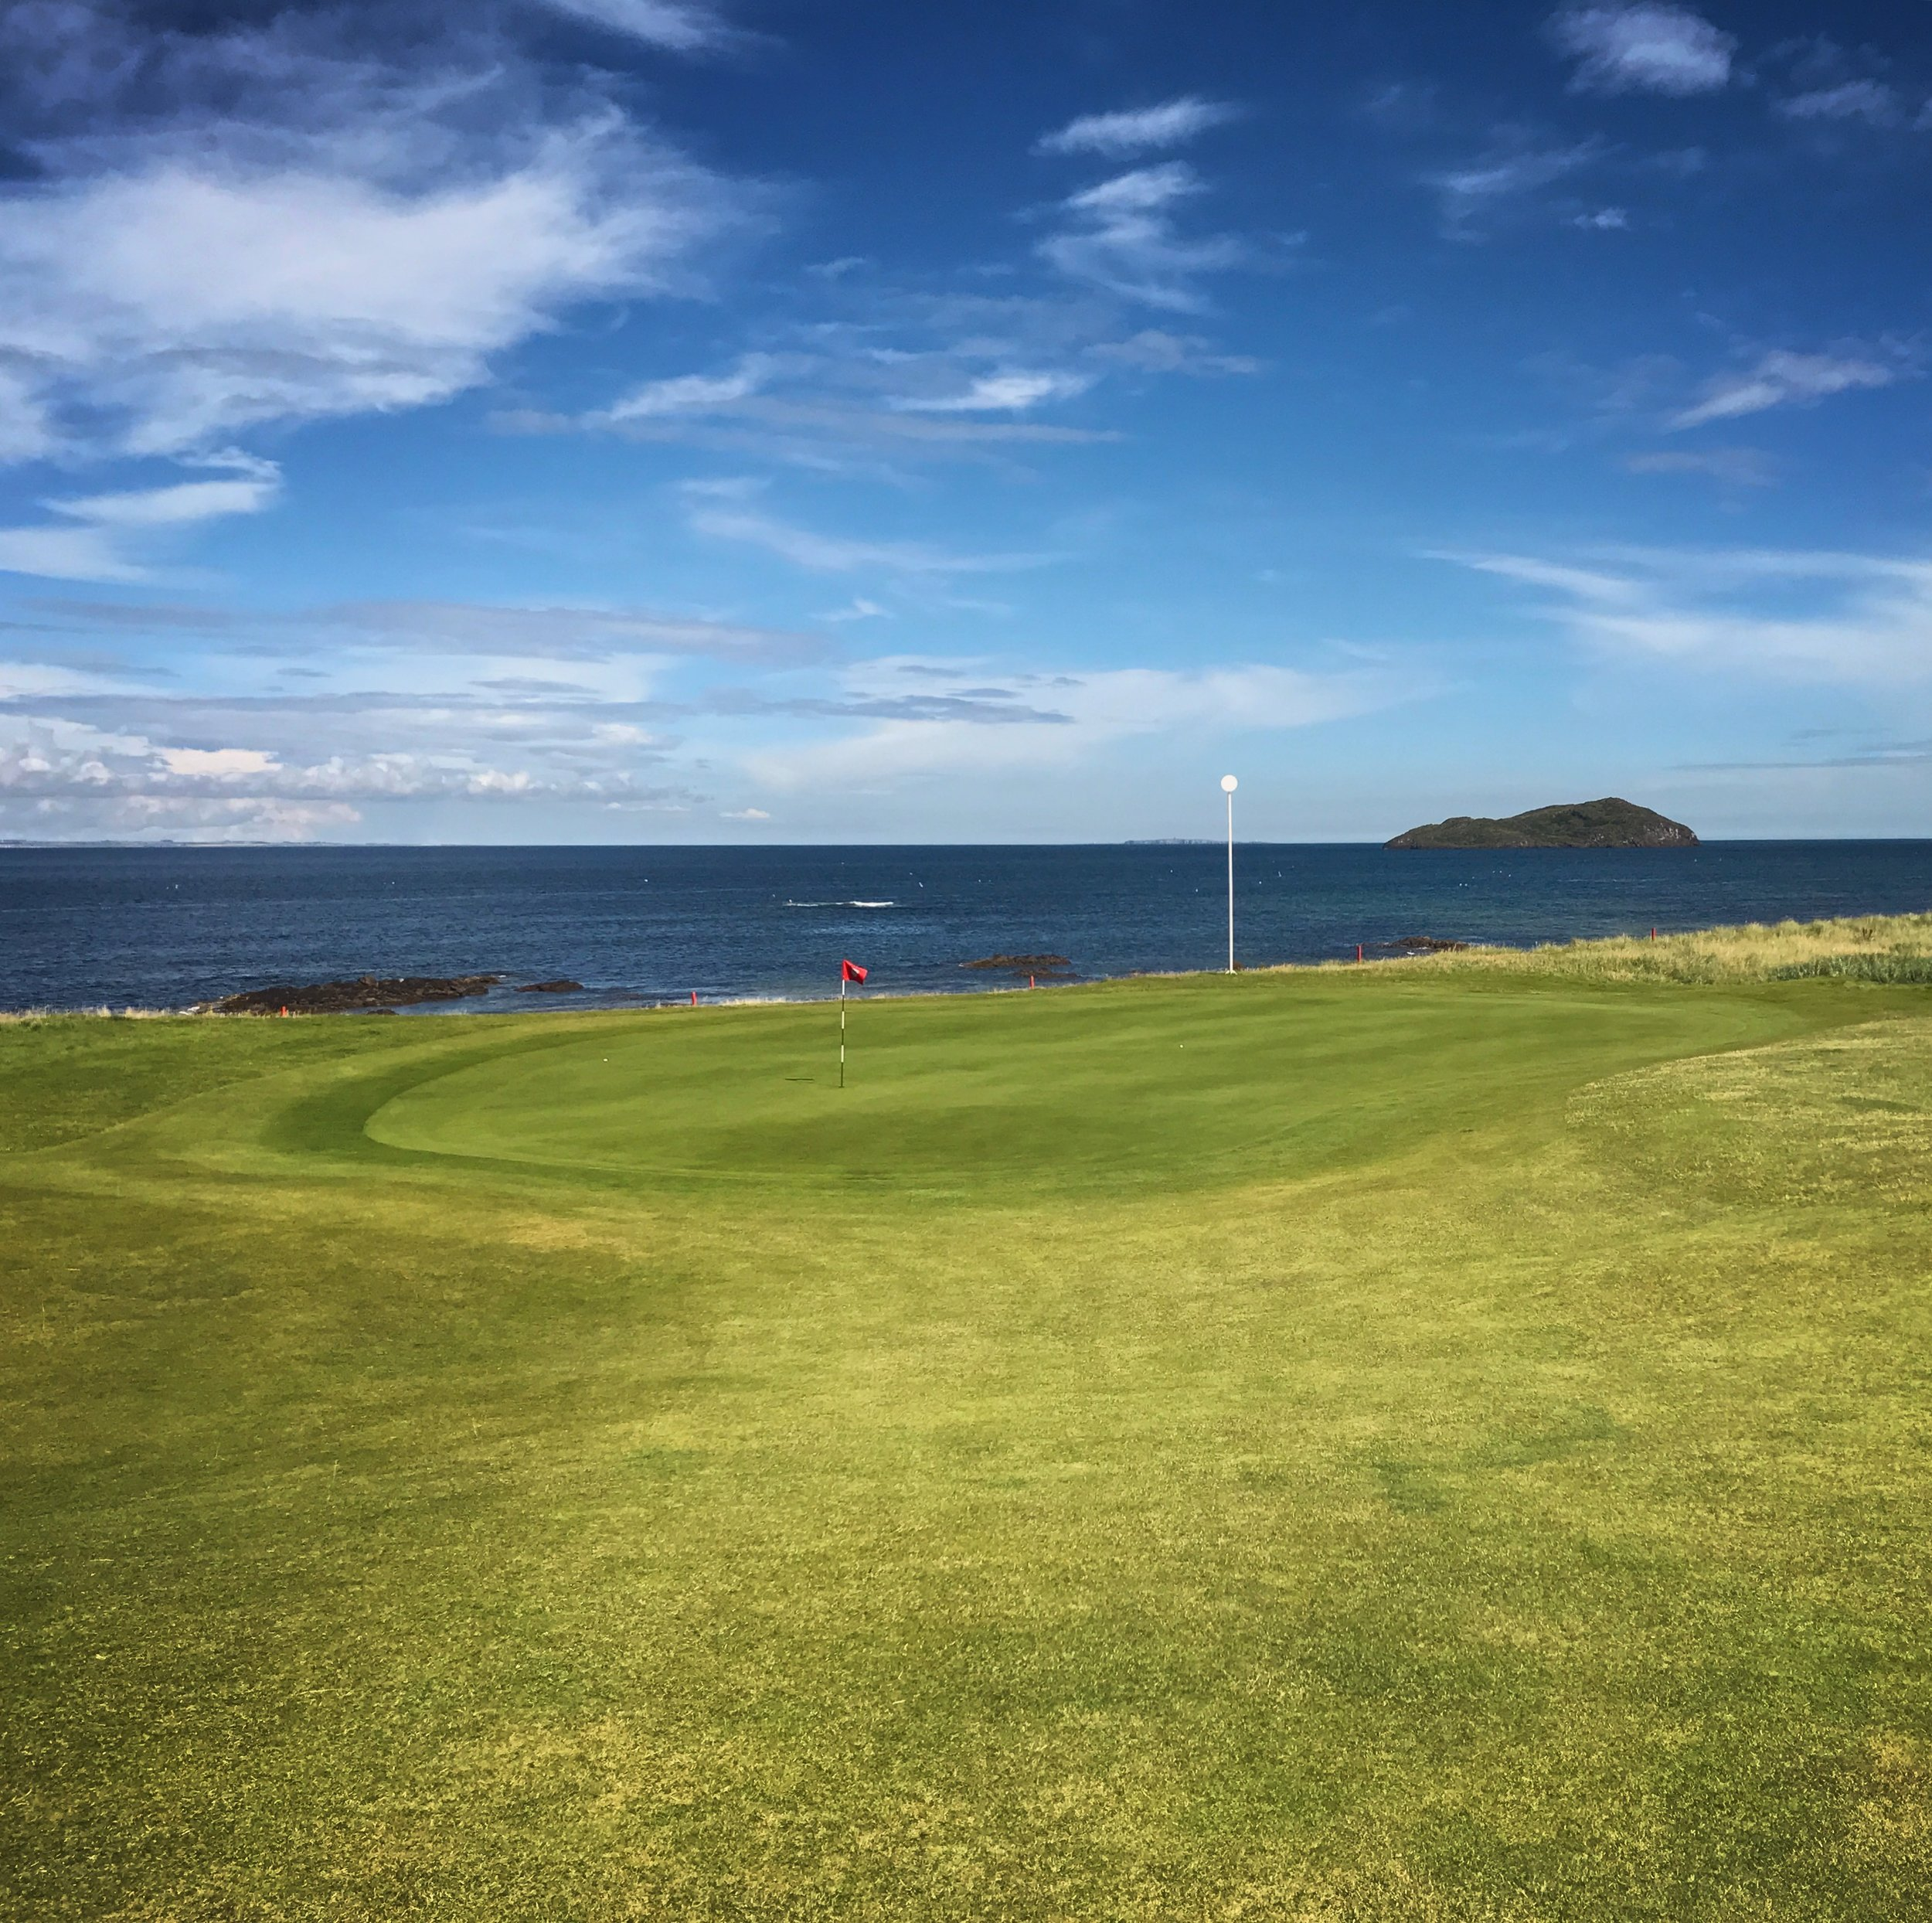 hochstein-design-best-of-2017-part-3-north-berwick-hole-14-perfection.jpg